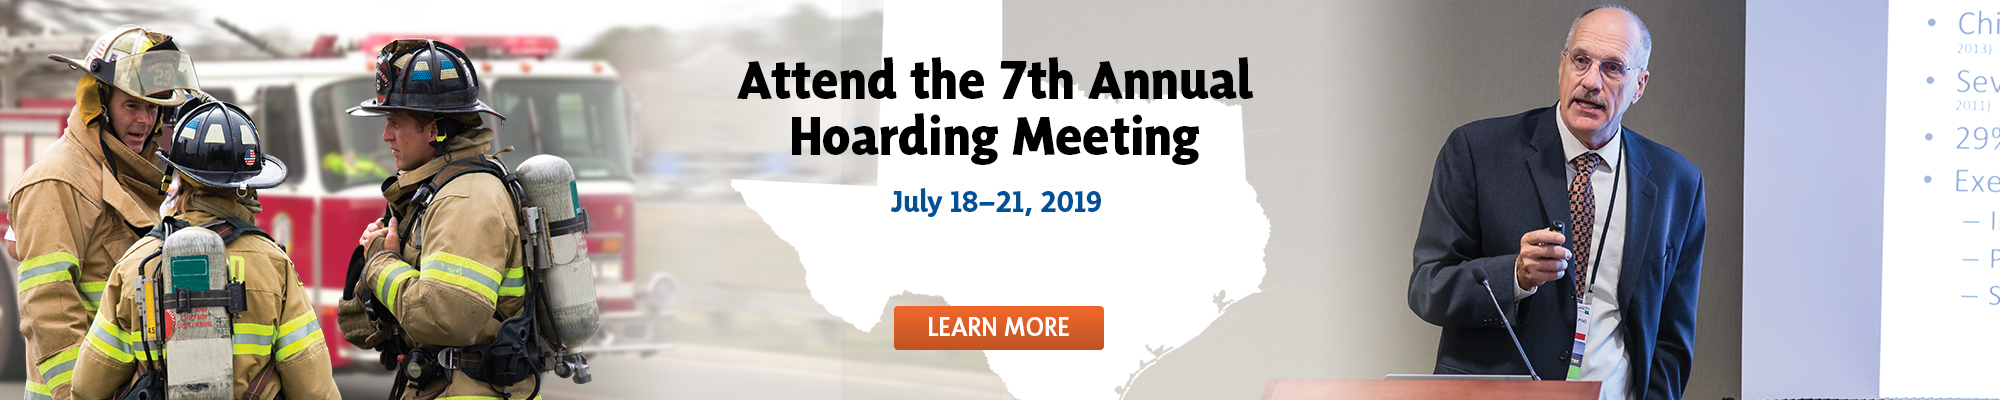 Come to the Annual Hoarding Meeting